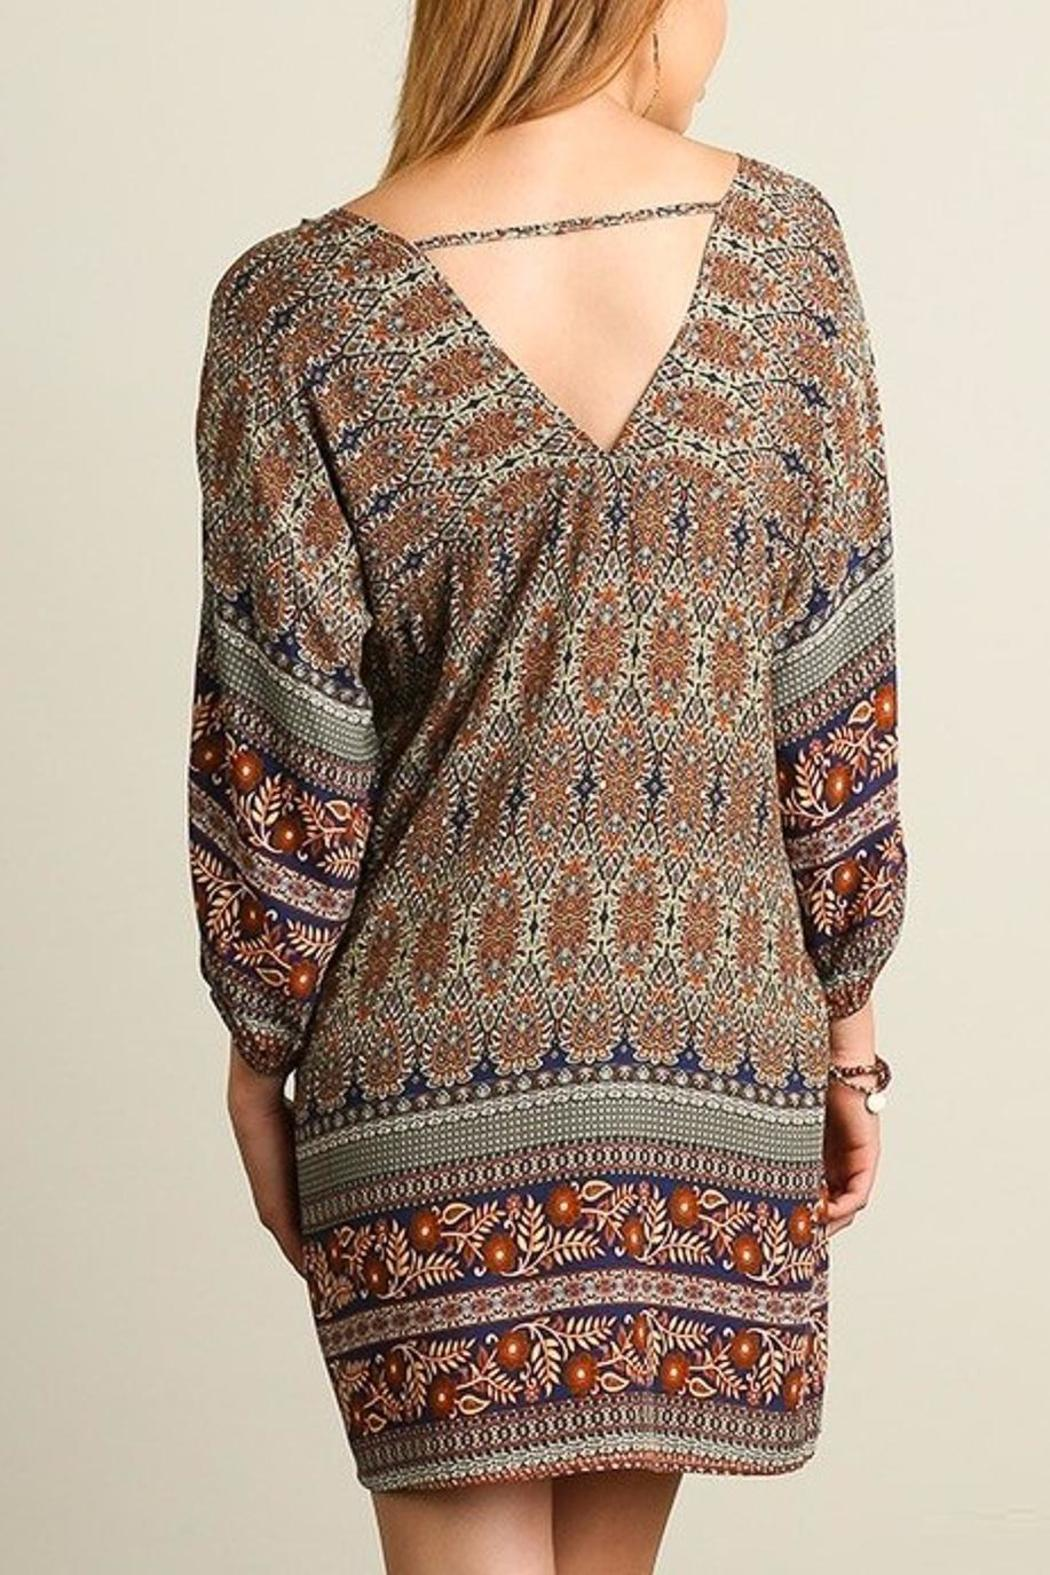 People Outfitter Laurel Dress - Front Full Image